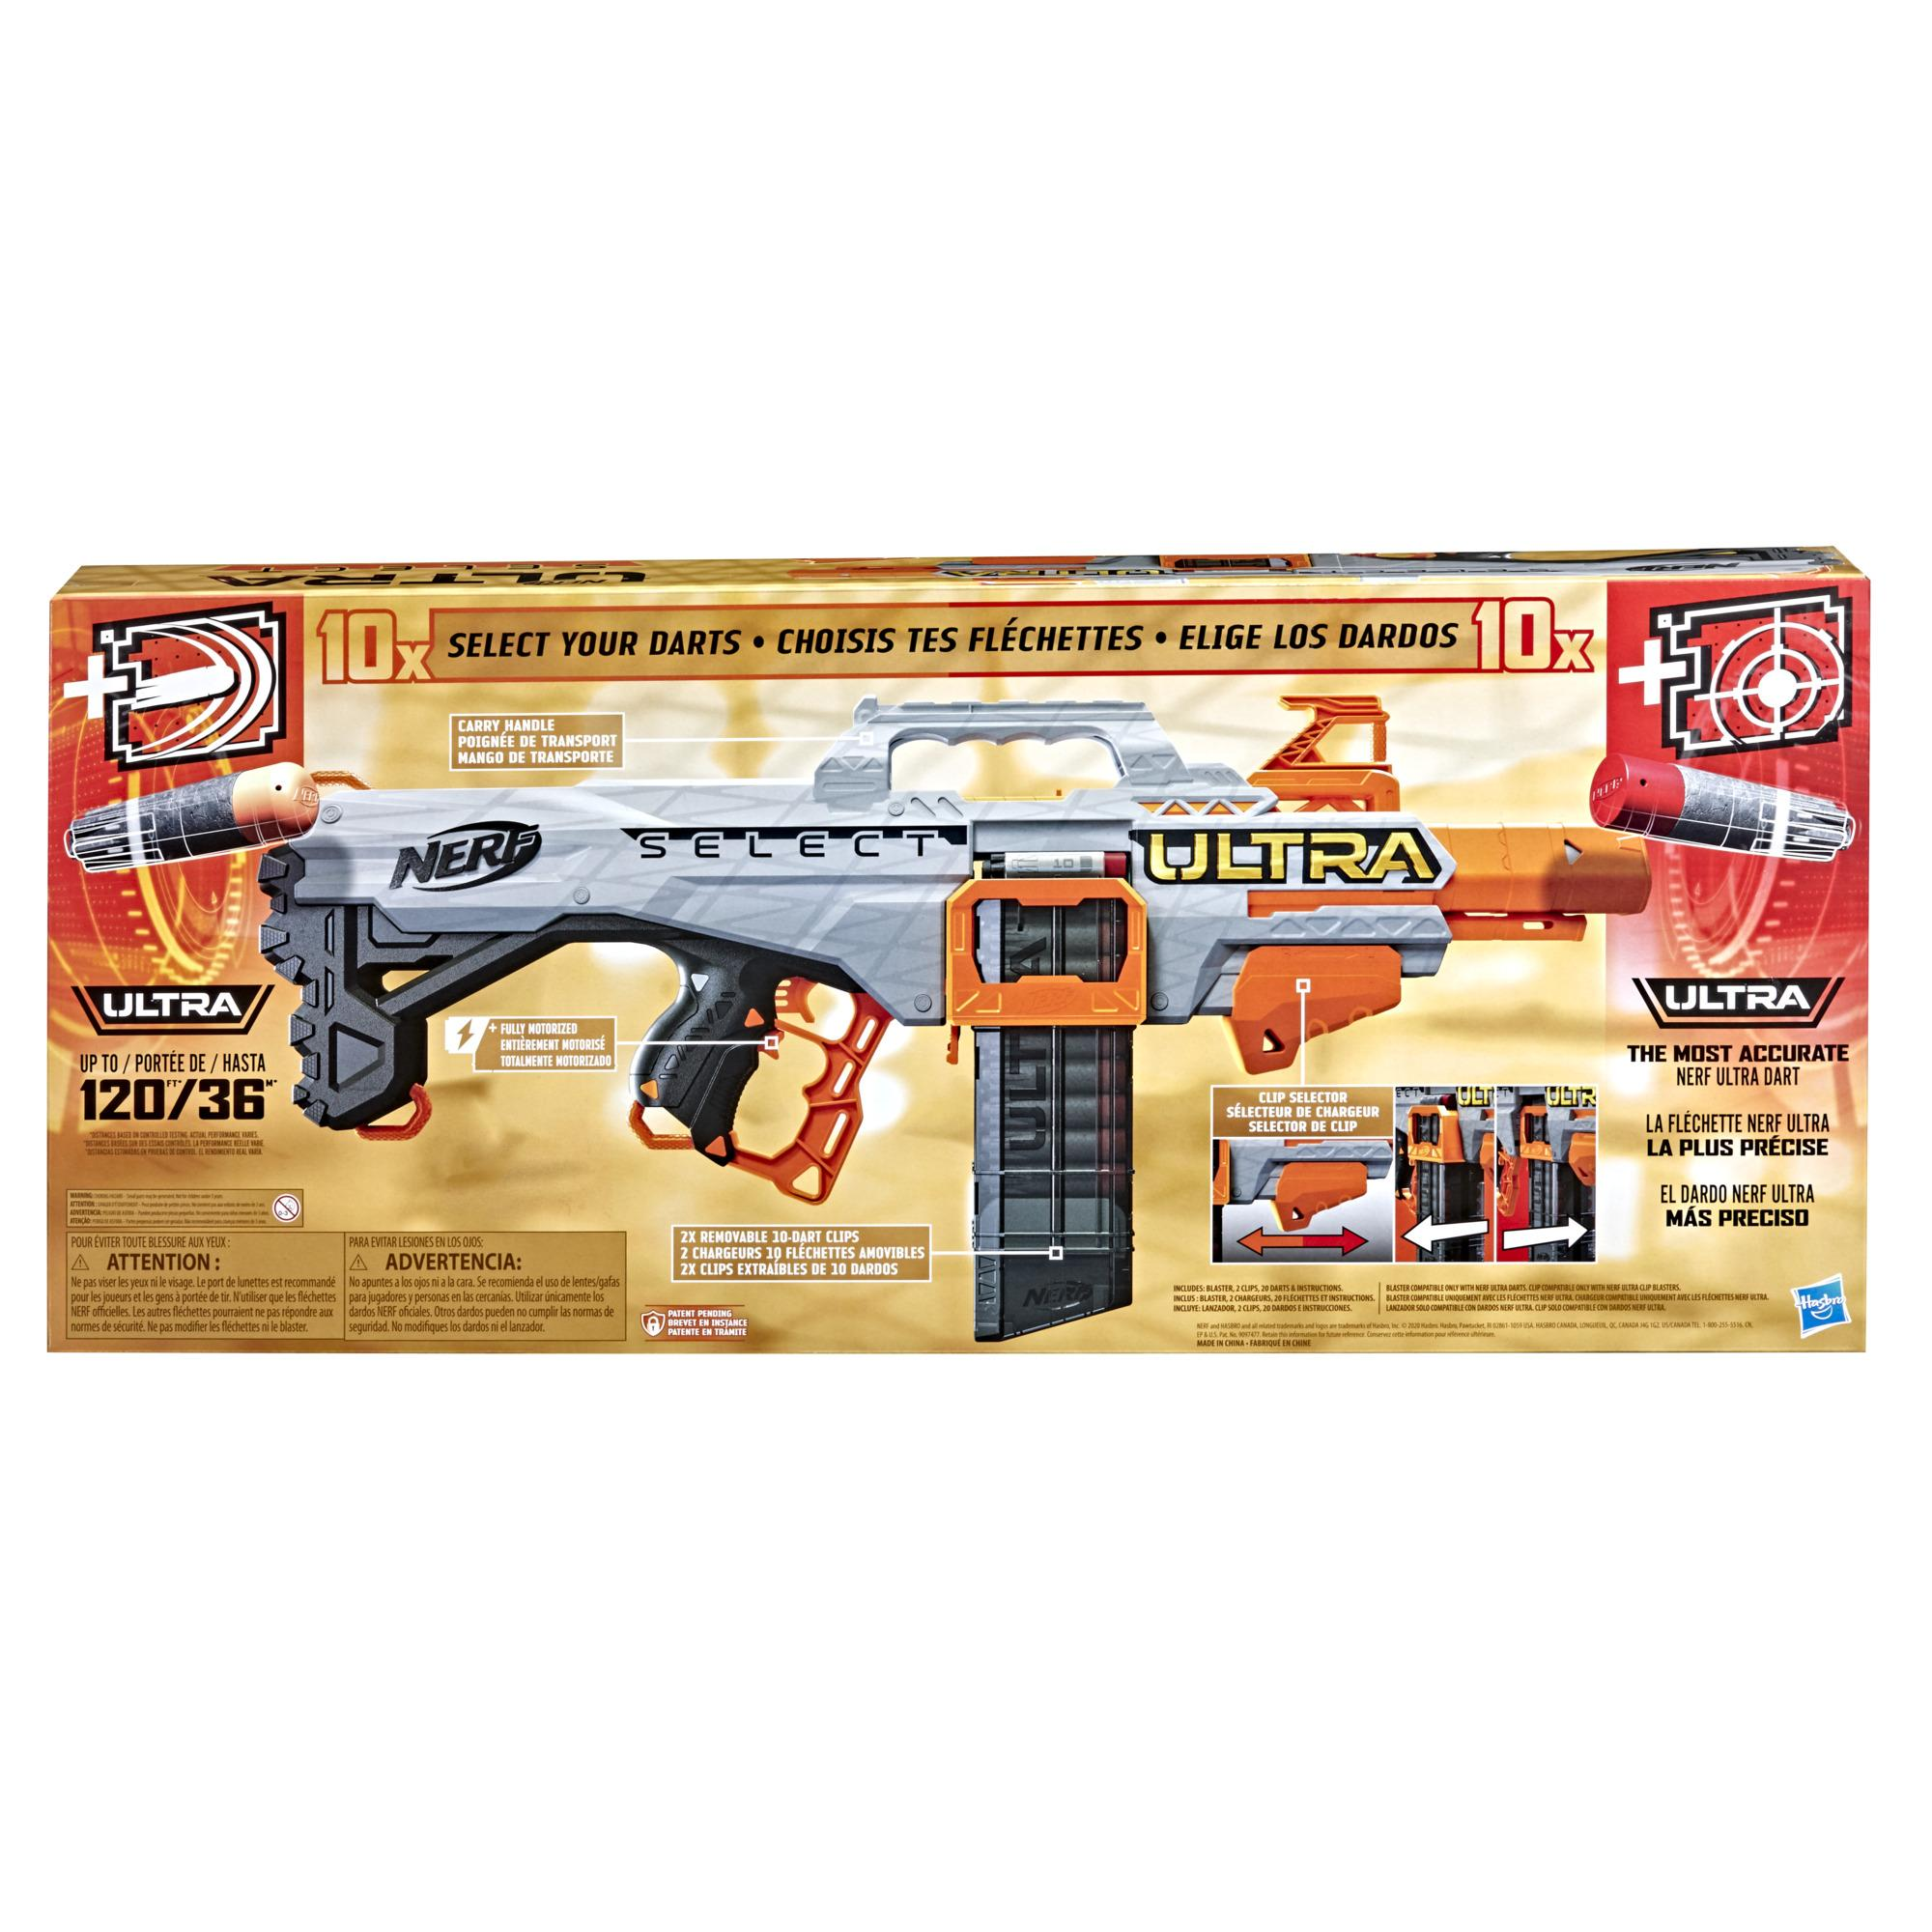 Nerf Ultra Select Fully Motorized Blaster, Fire 2 Ways, Includes Clips and Darts, Compatible Only with Nerf Ultra Darts